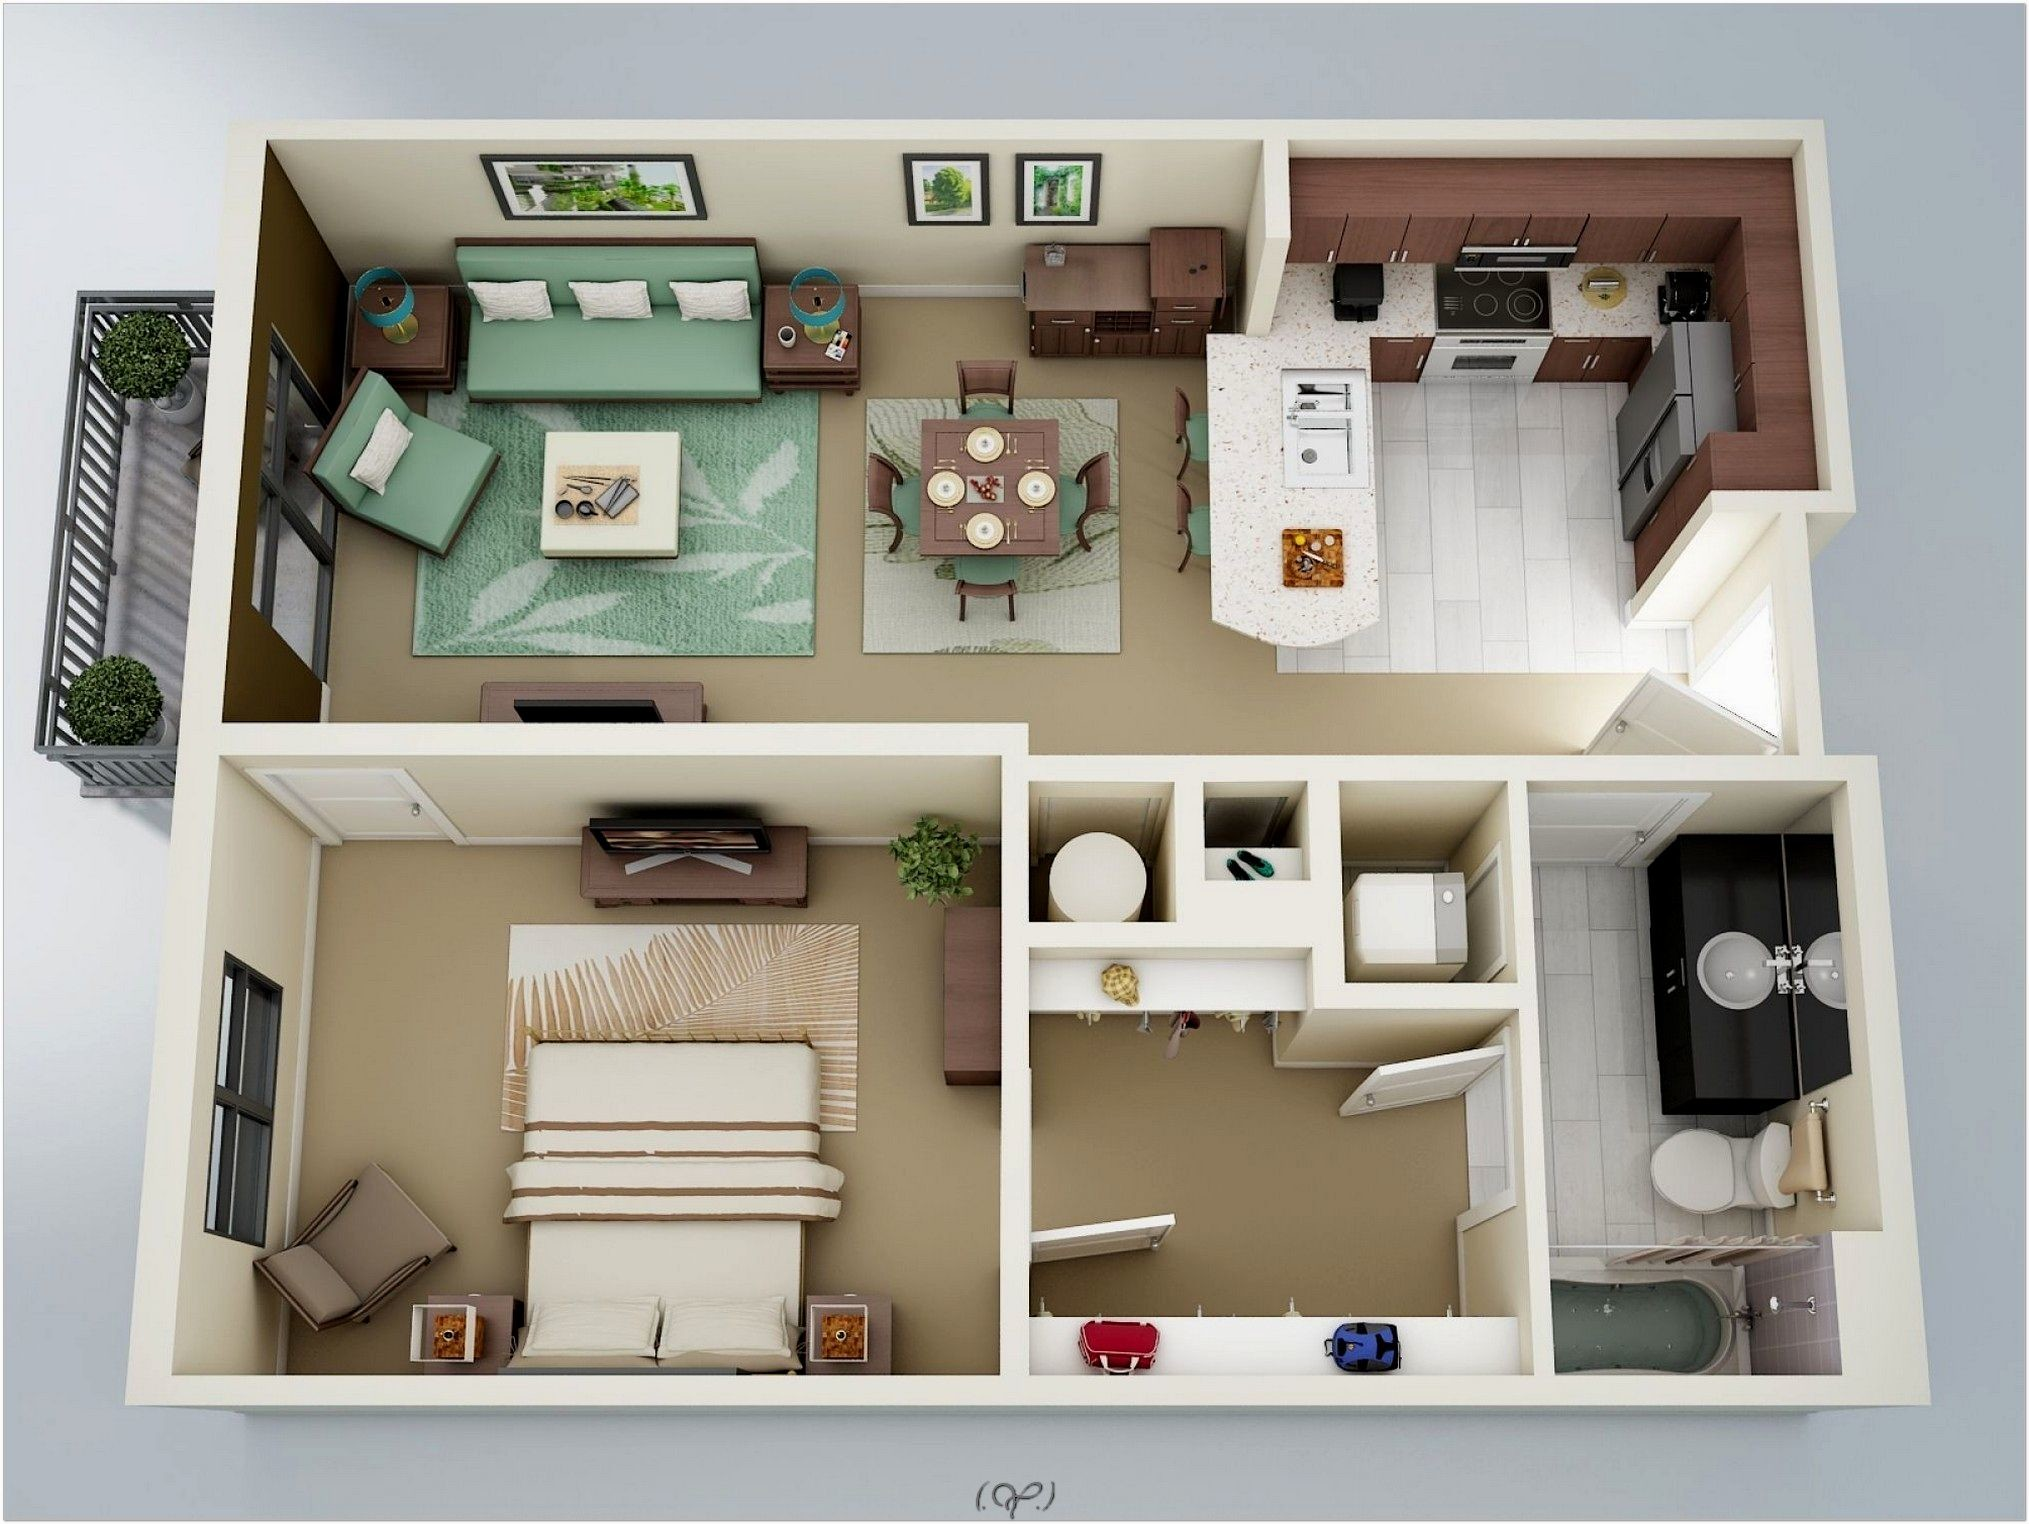 one bedroom apartments lincoln ne 6 Gallery Image and Wallpaper